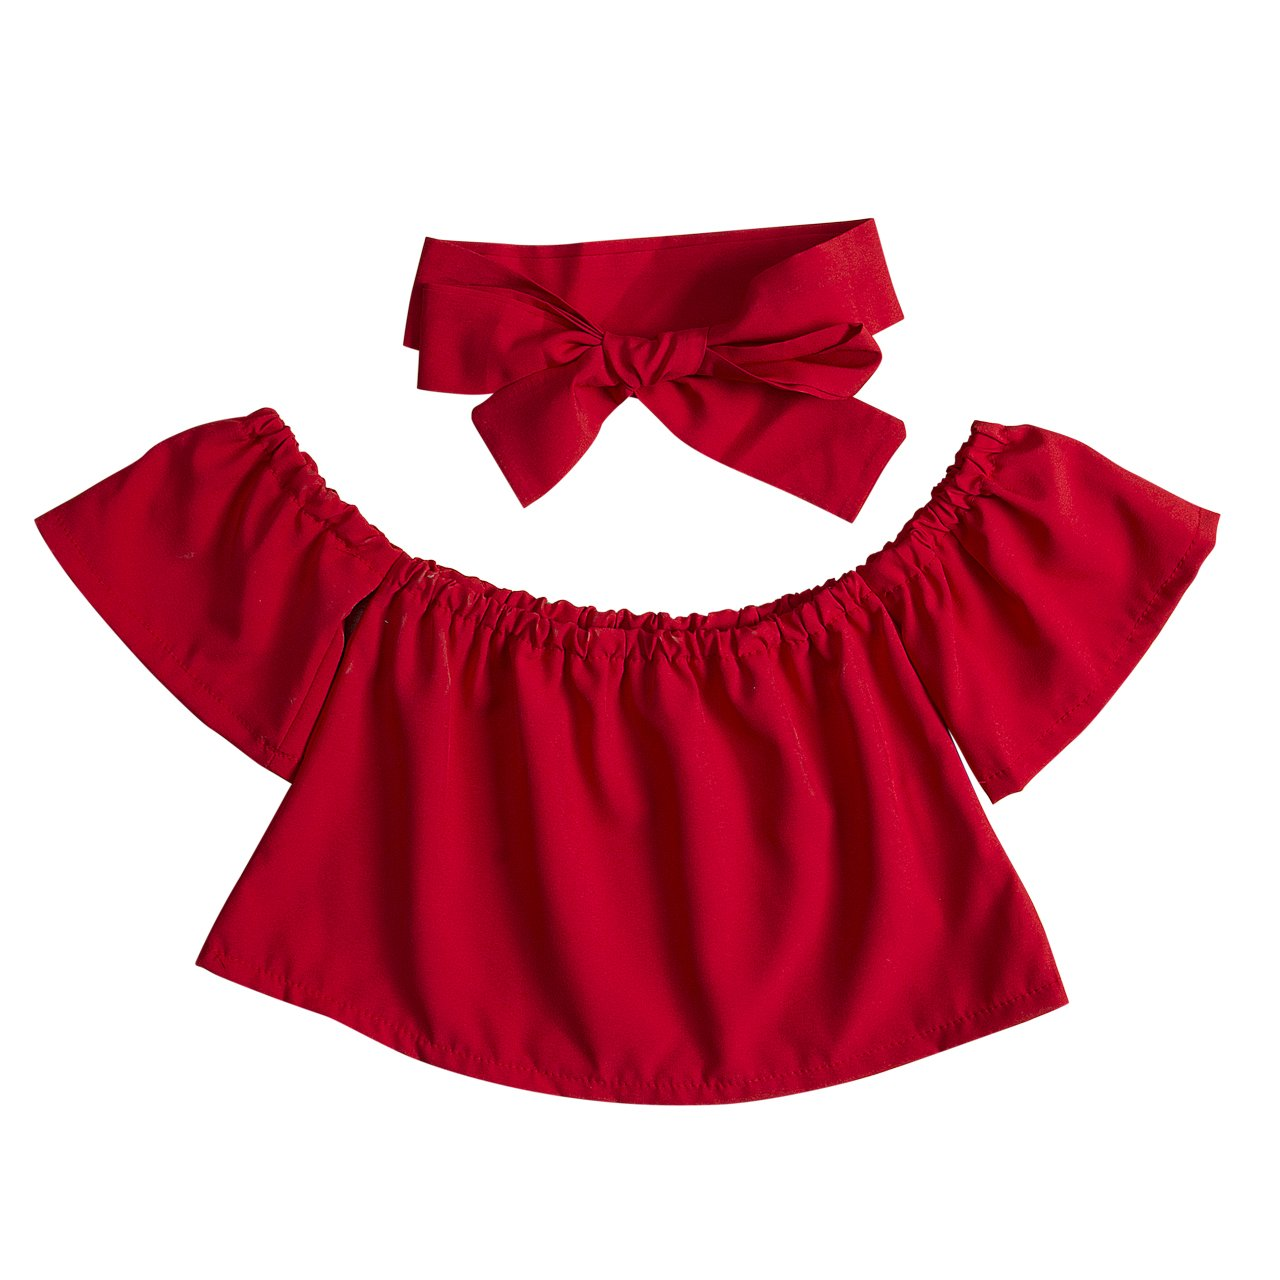 Cute Baby Girls Solid Off Shoulder Elastic Fashion Ruffle Romper Shorts Blouse + Bow Headband 2pcs